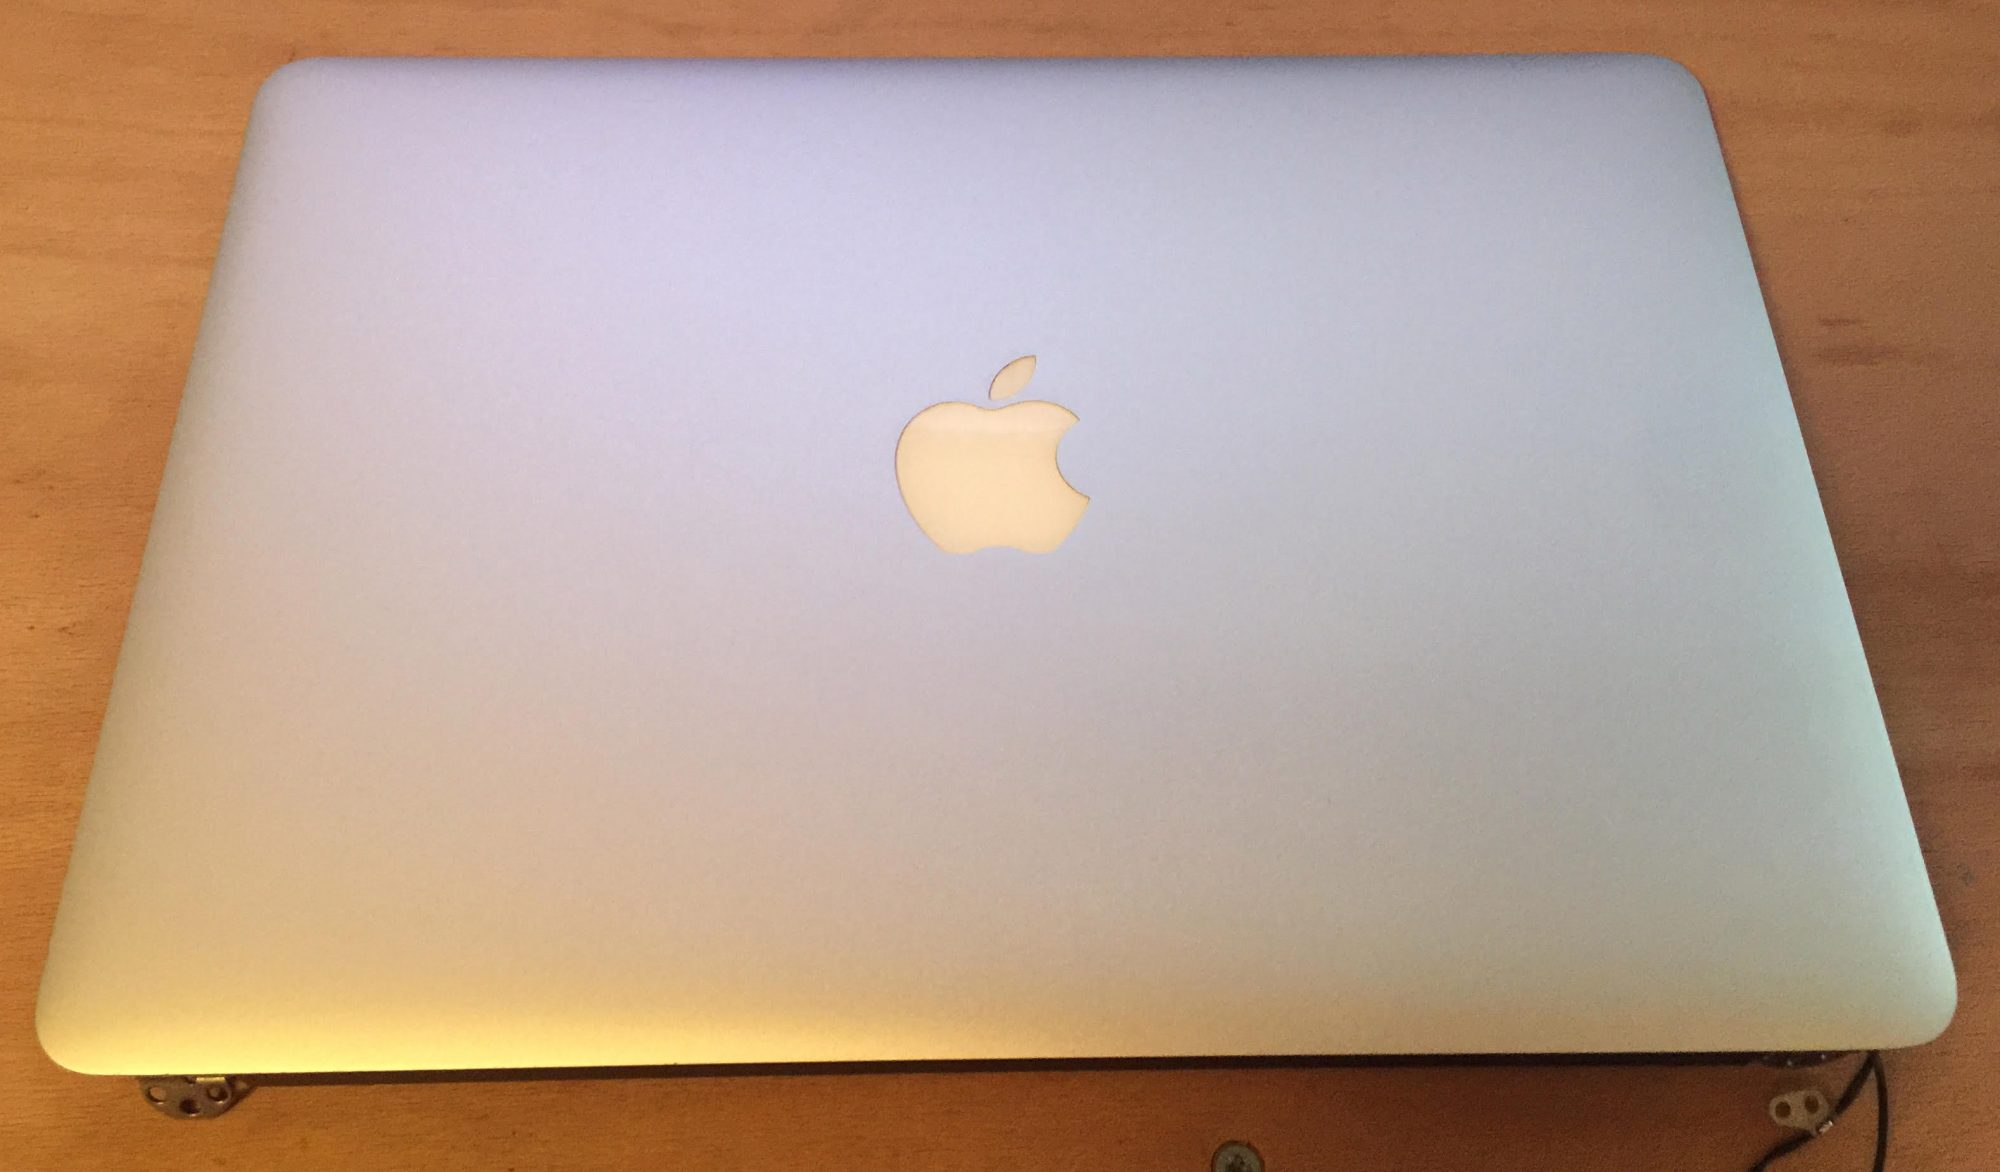 "Full Top LCD Assembly (Faulty) from MacBook Air ""Core i5″ 1.3 13"" Mid 2013, MD760LL/A*, A1466 (EMC 2632), MacBookAir6,2"